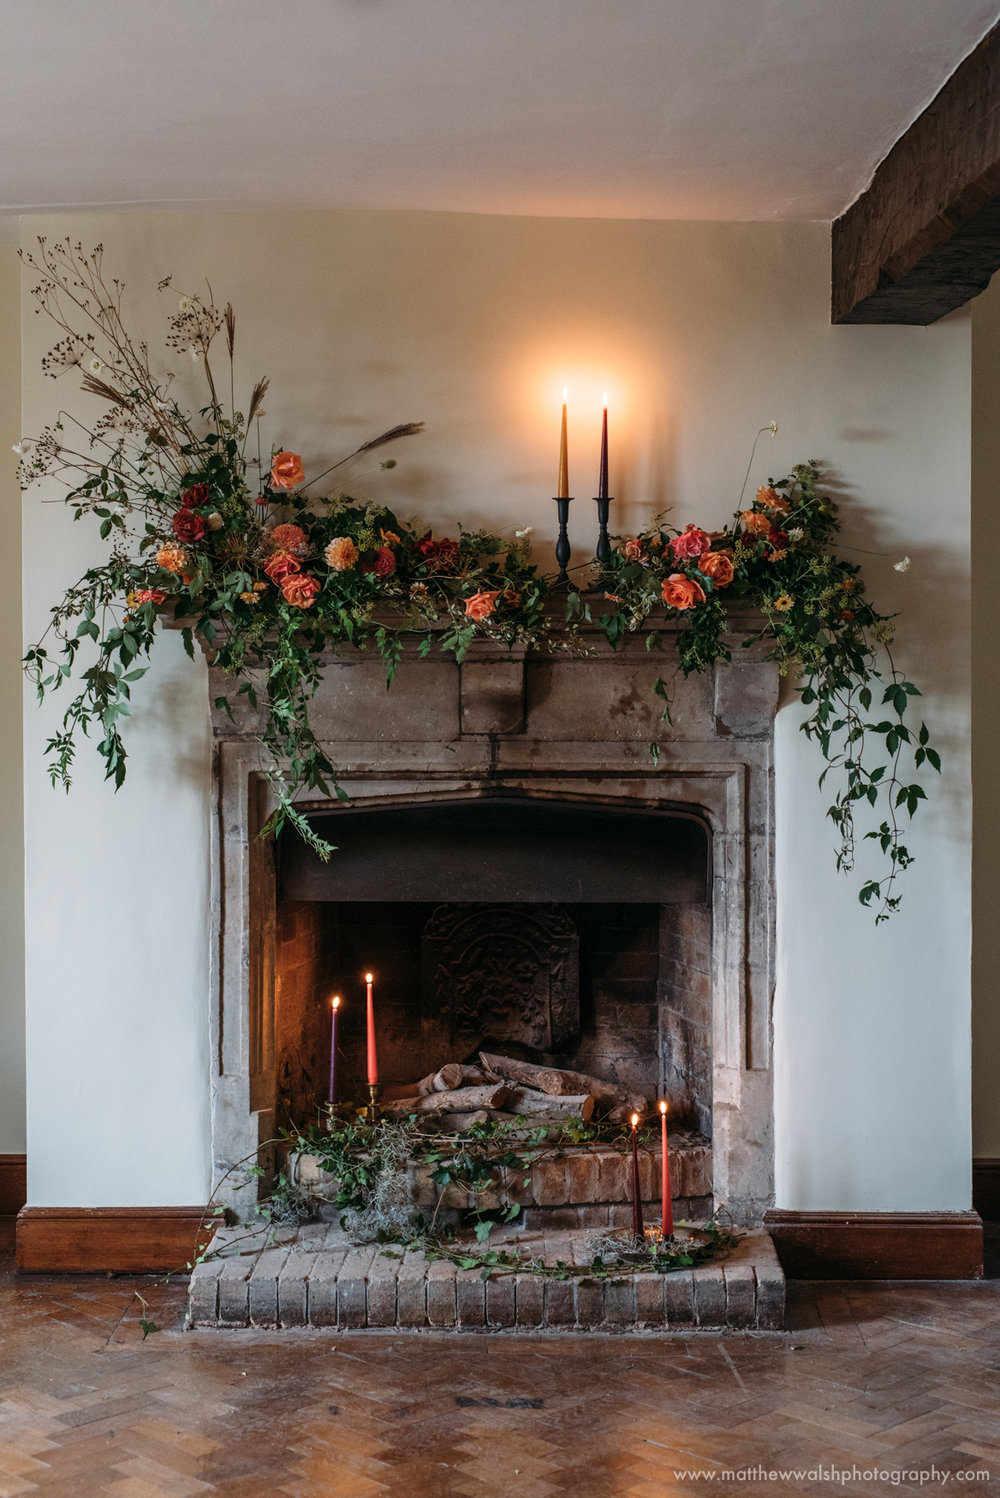 Fireplace giving off a festive vibe